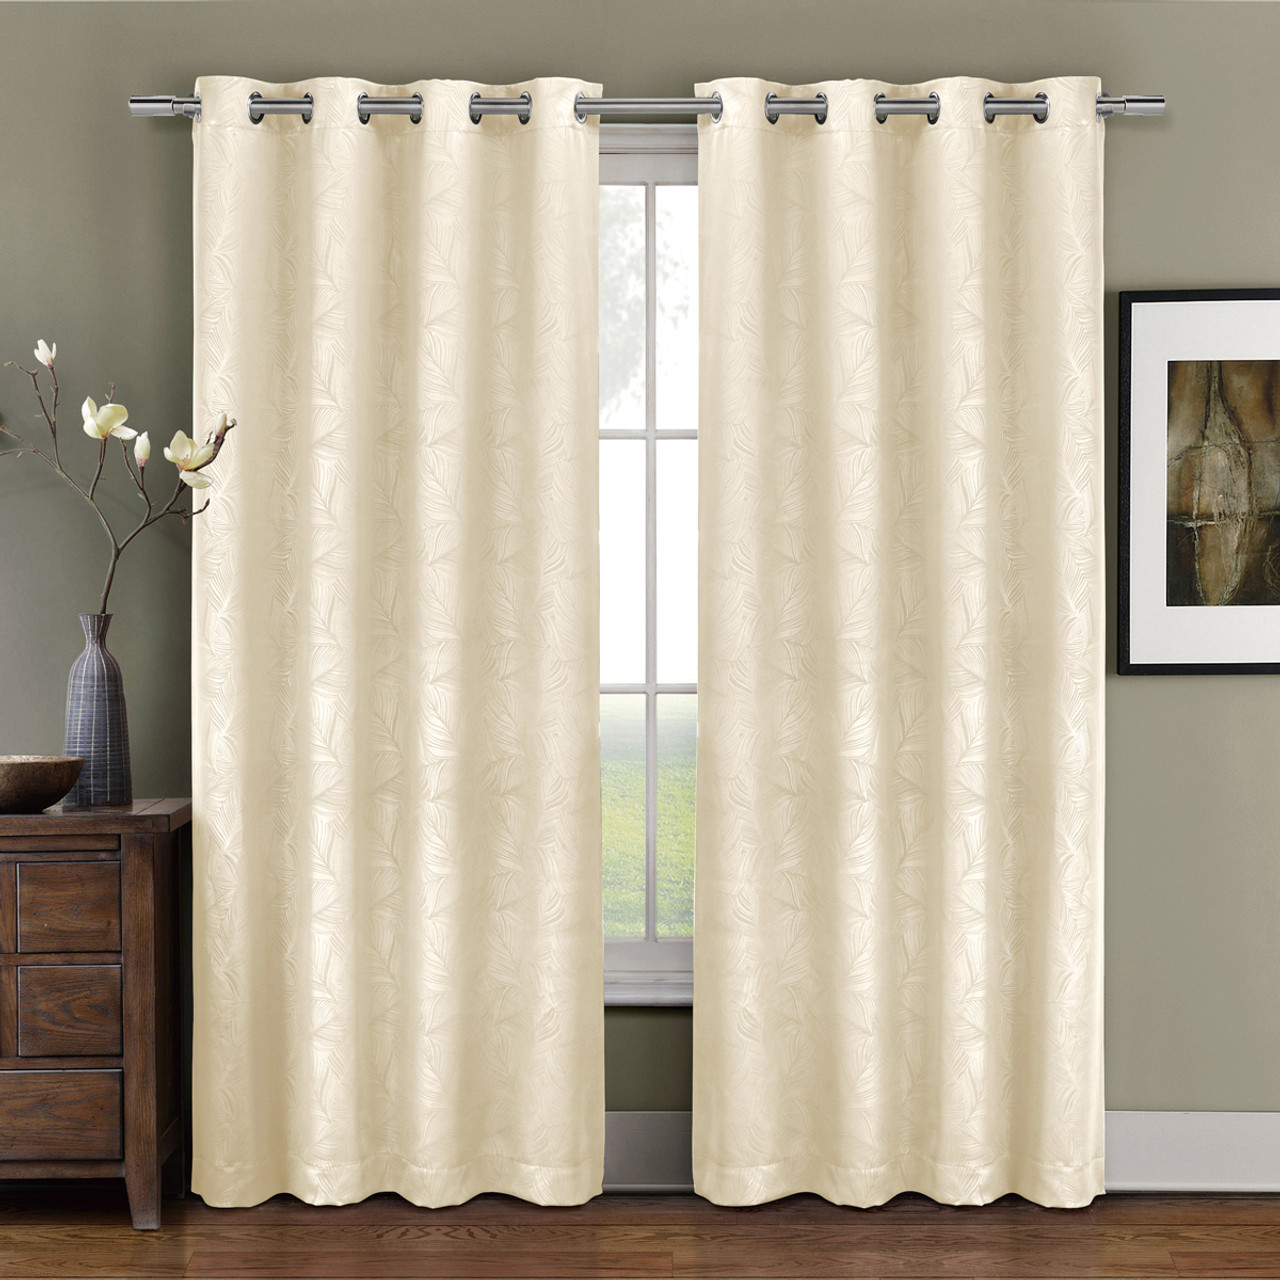 pdp solid thermal curtain curtains fashion grommet panels treatments best window home blackout inc